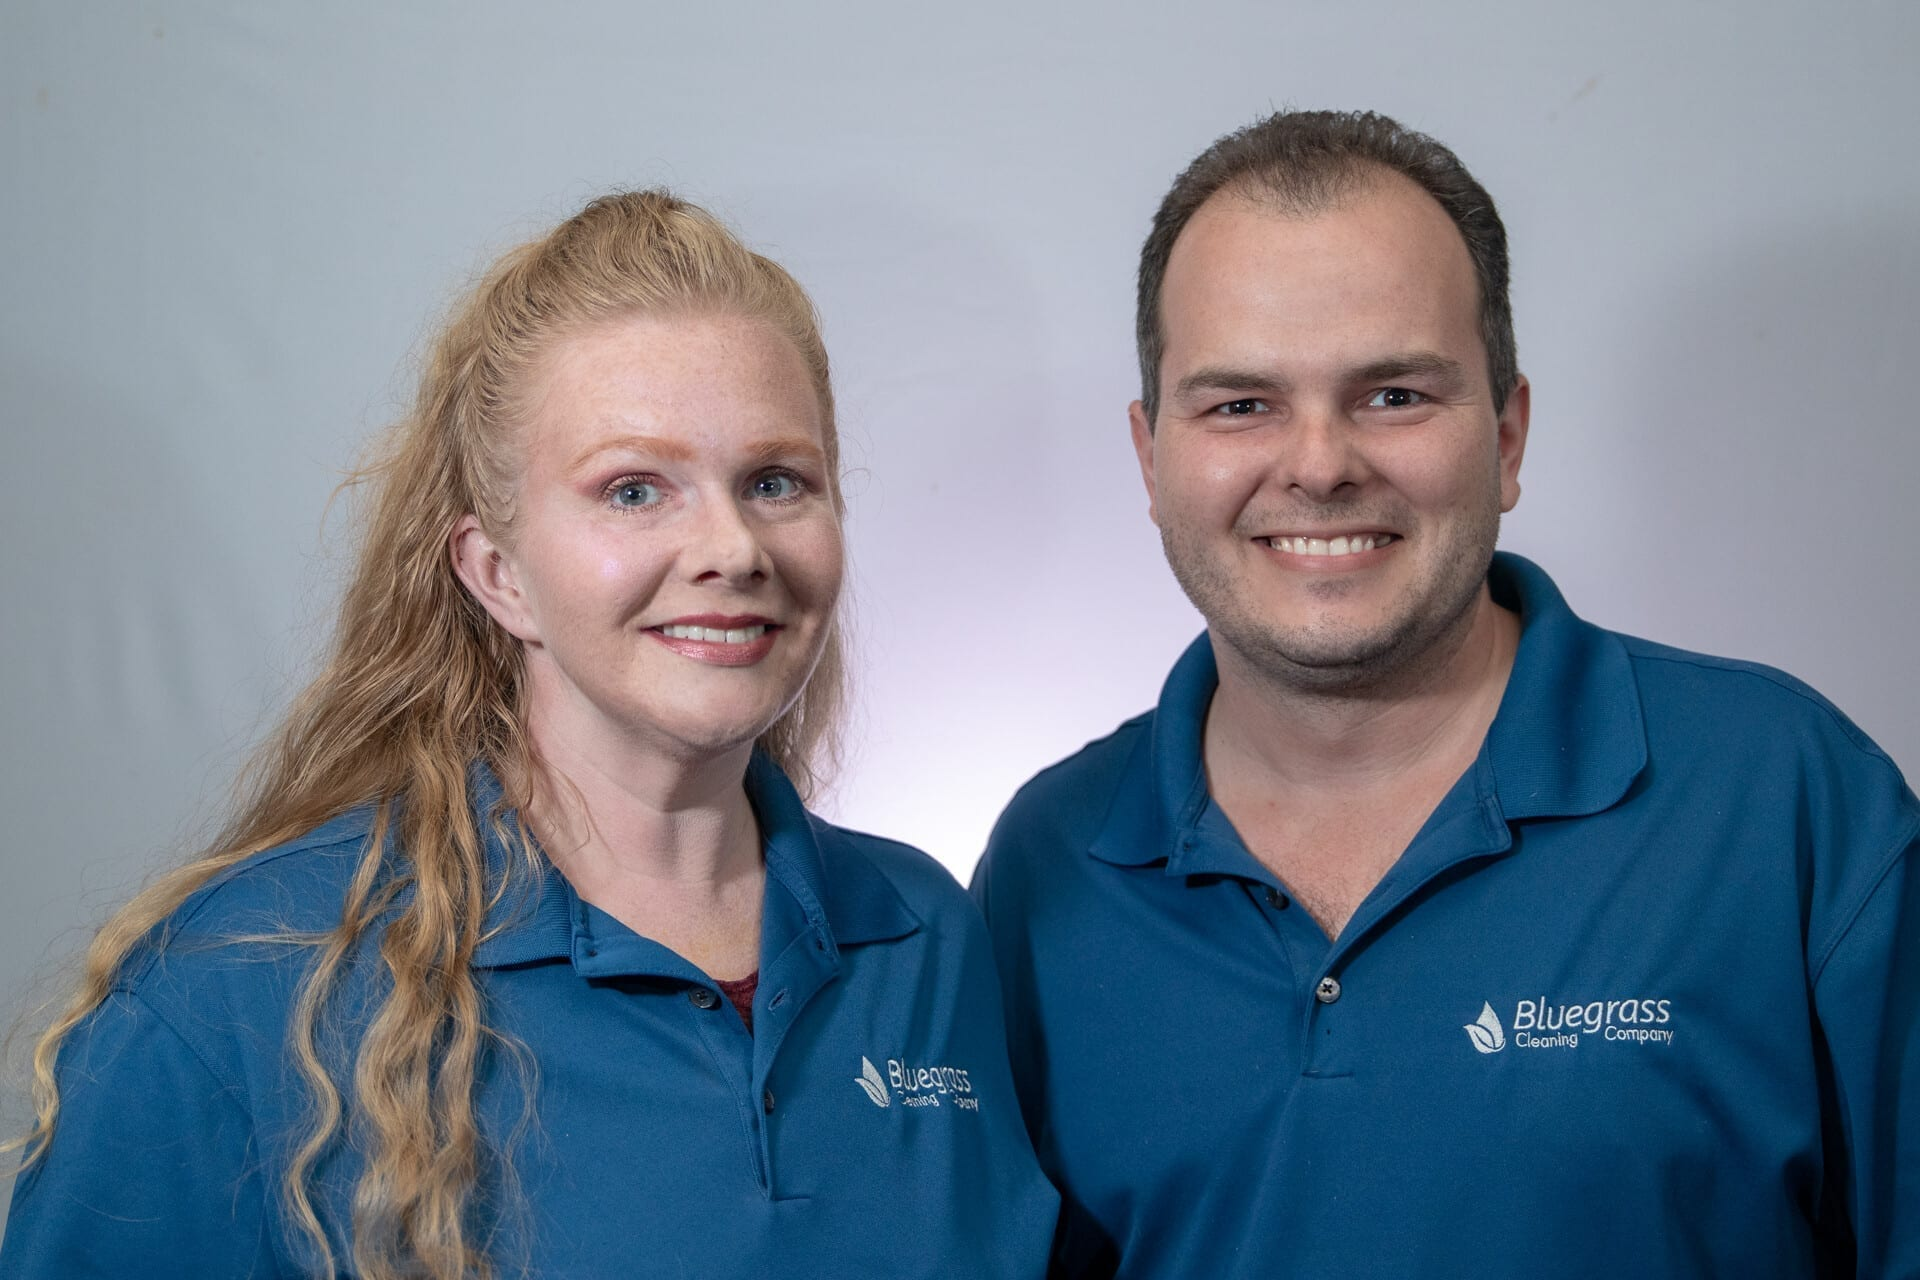 Owners of Bluegrass Cleaning Company